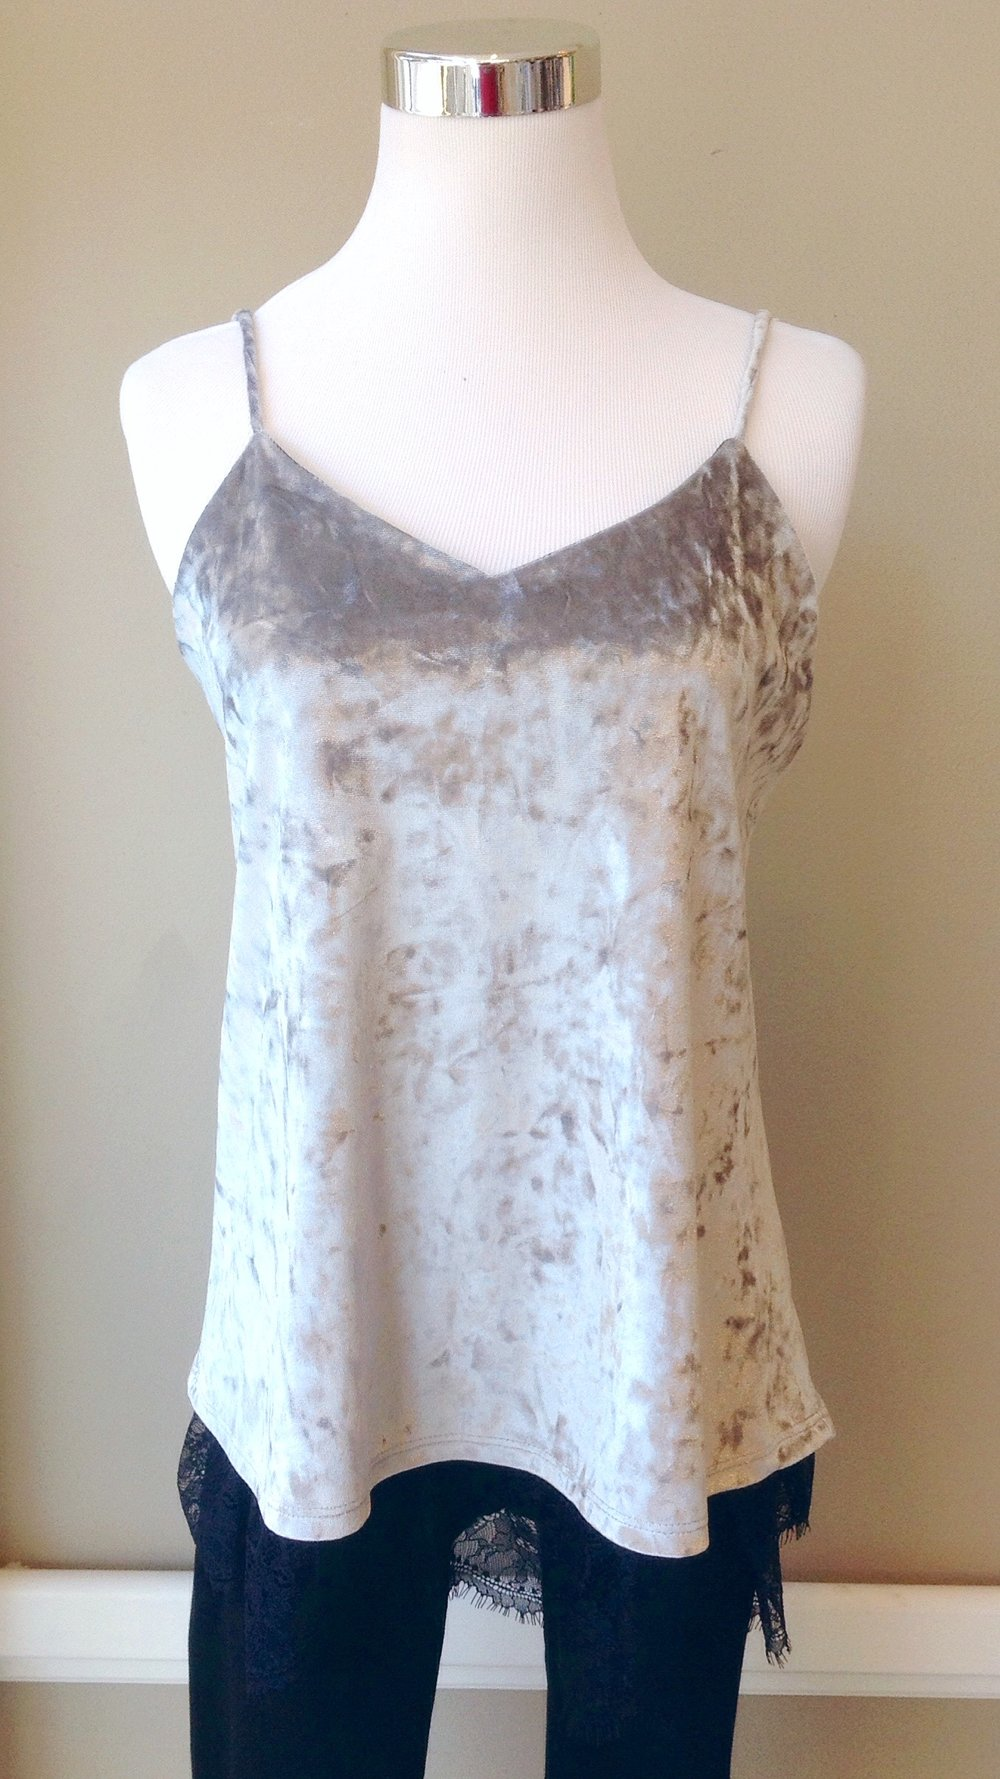 Silver velvet tank with adjustable straps and lace trim, $34